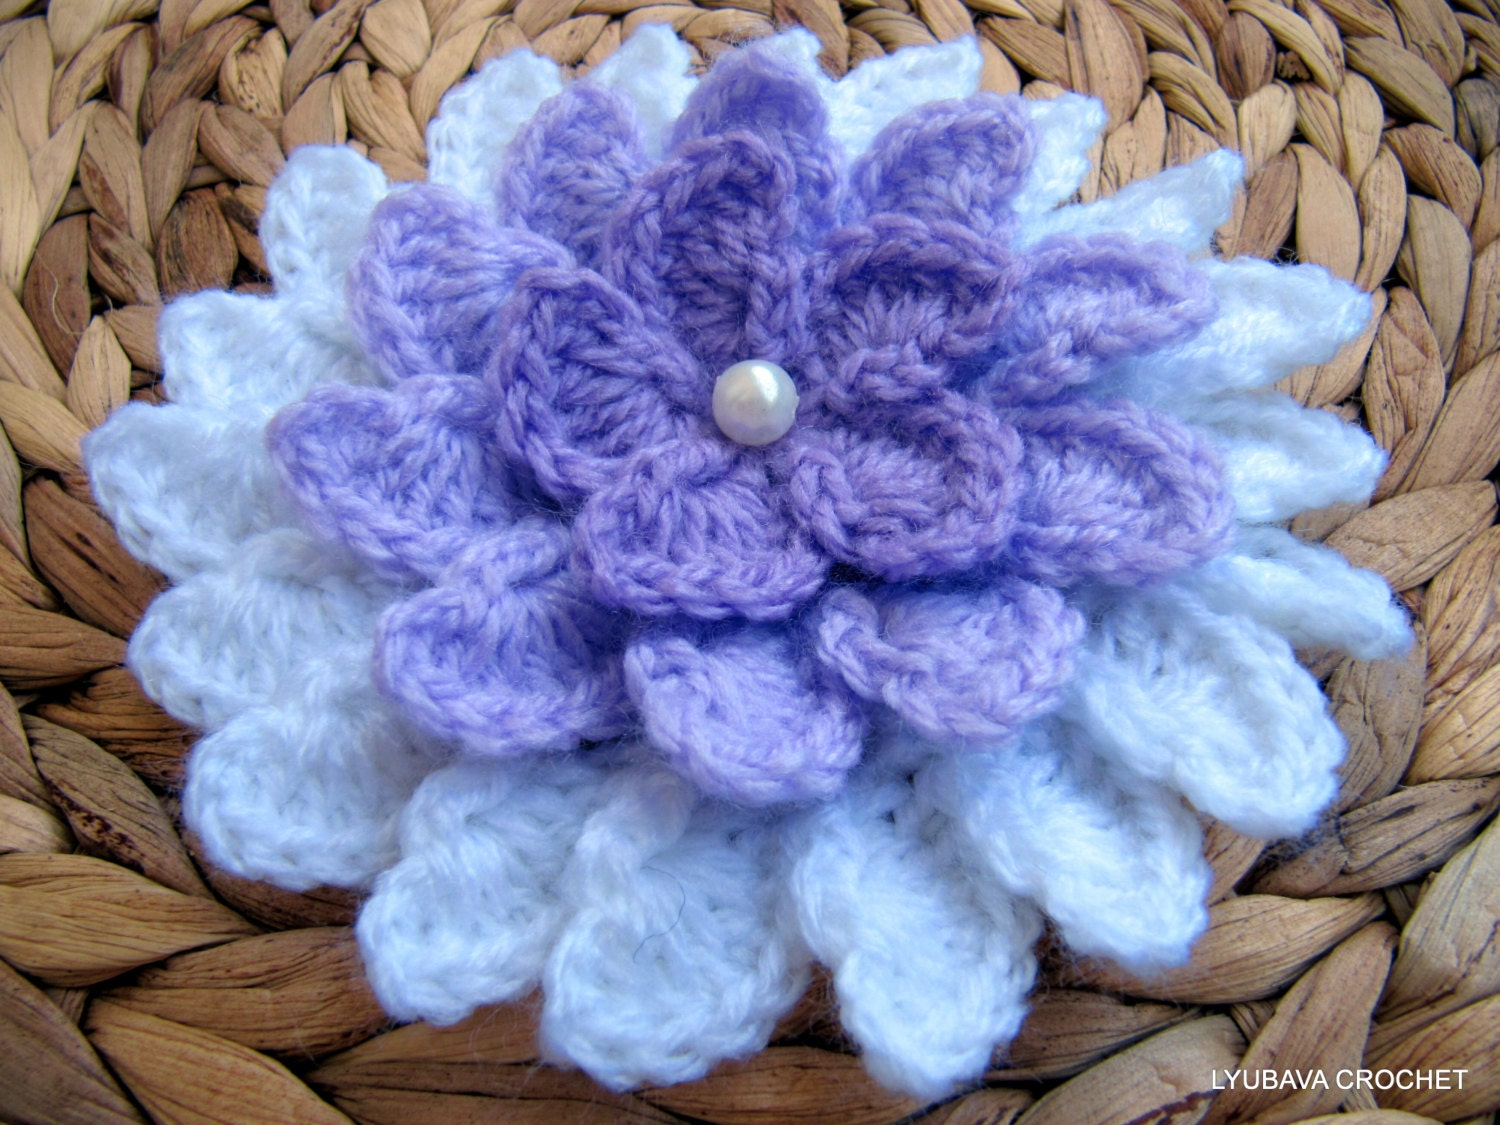 Crochet flower pattern lilac flower diy crafts unique zoom izmirmasajfo Image collections